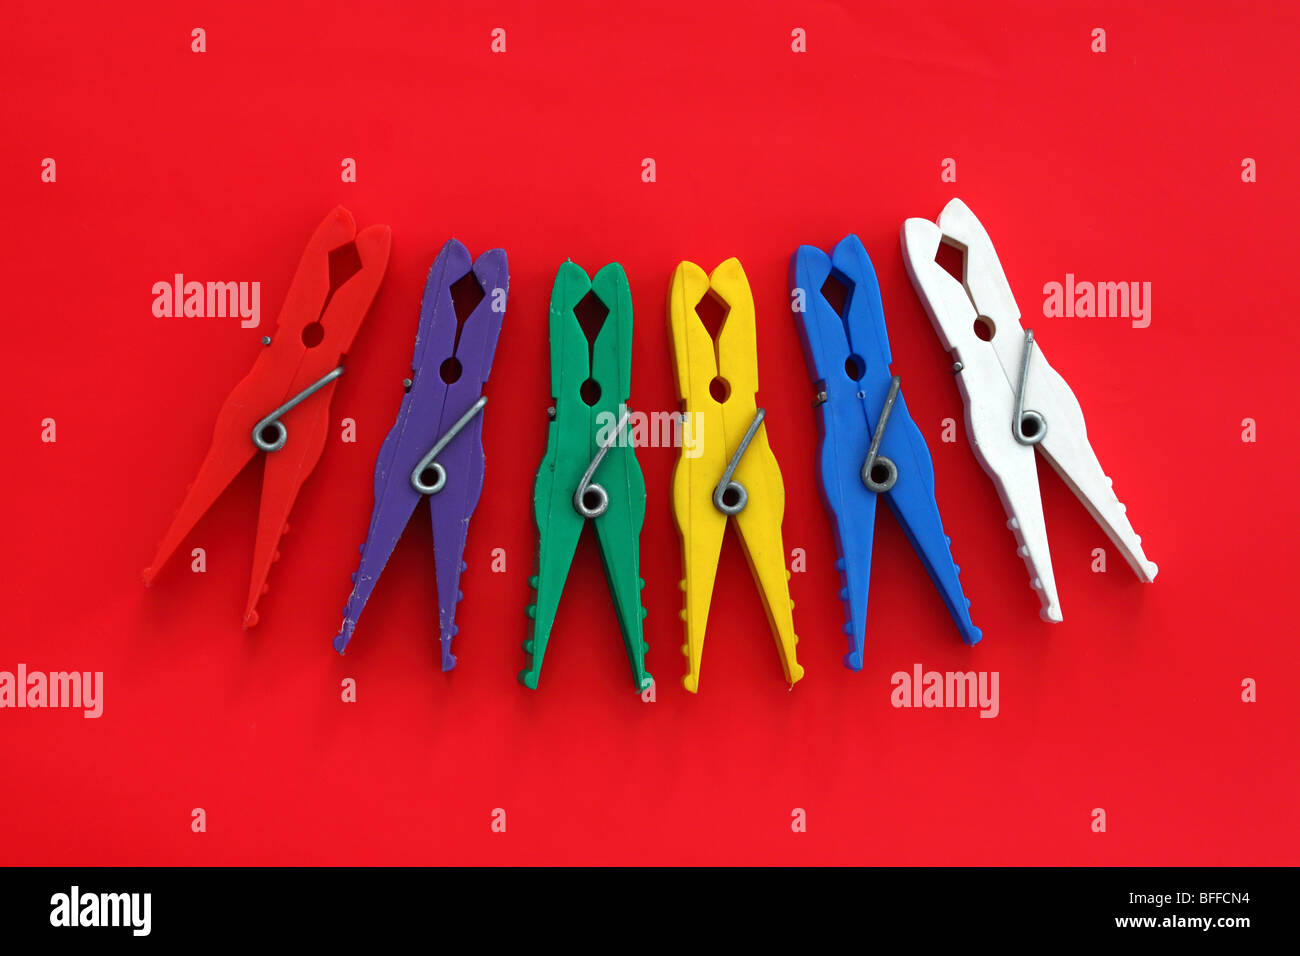 Multicolor laundry clips on red background - Stock Image